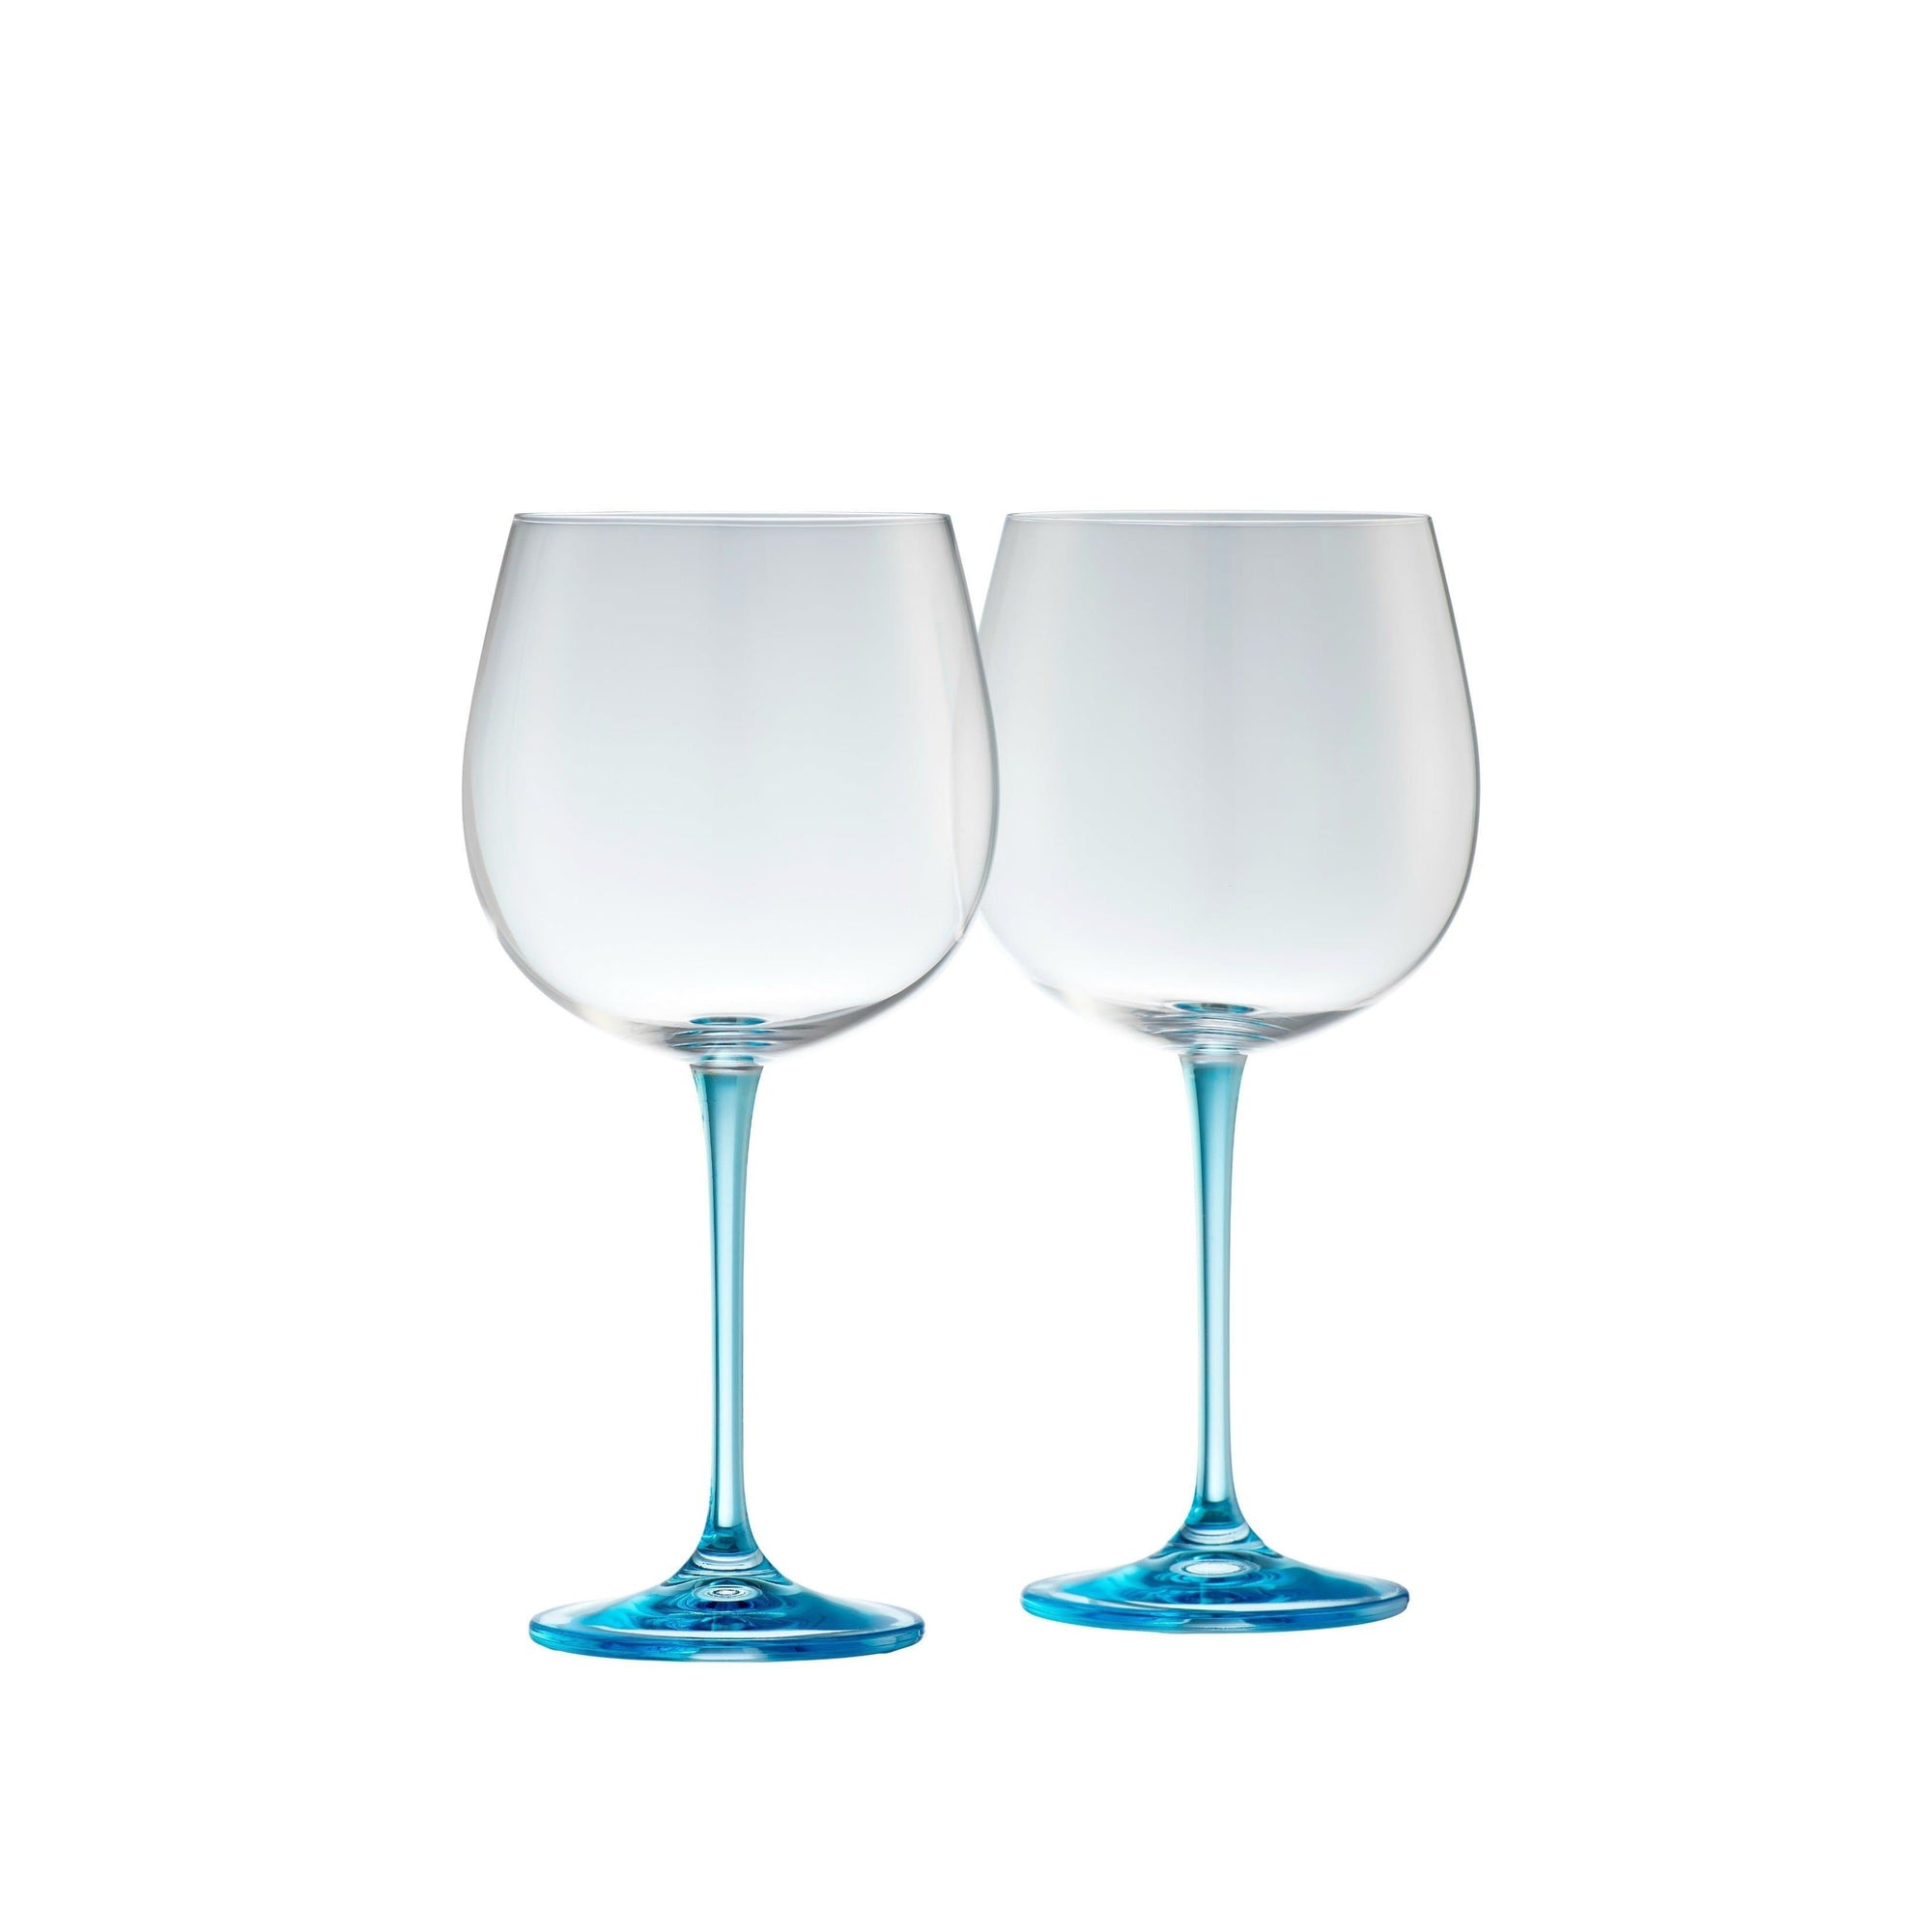 Gin & Tonic (Pair) - Blue G600143 - Galway Irish Crystal